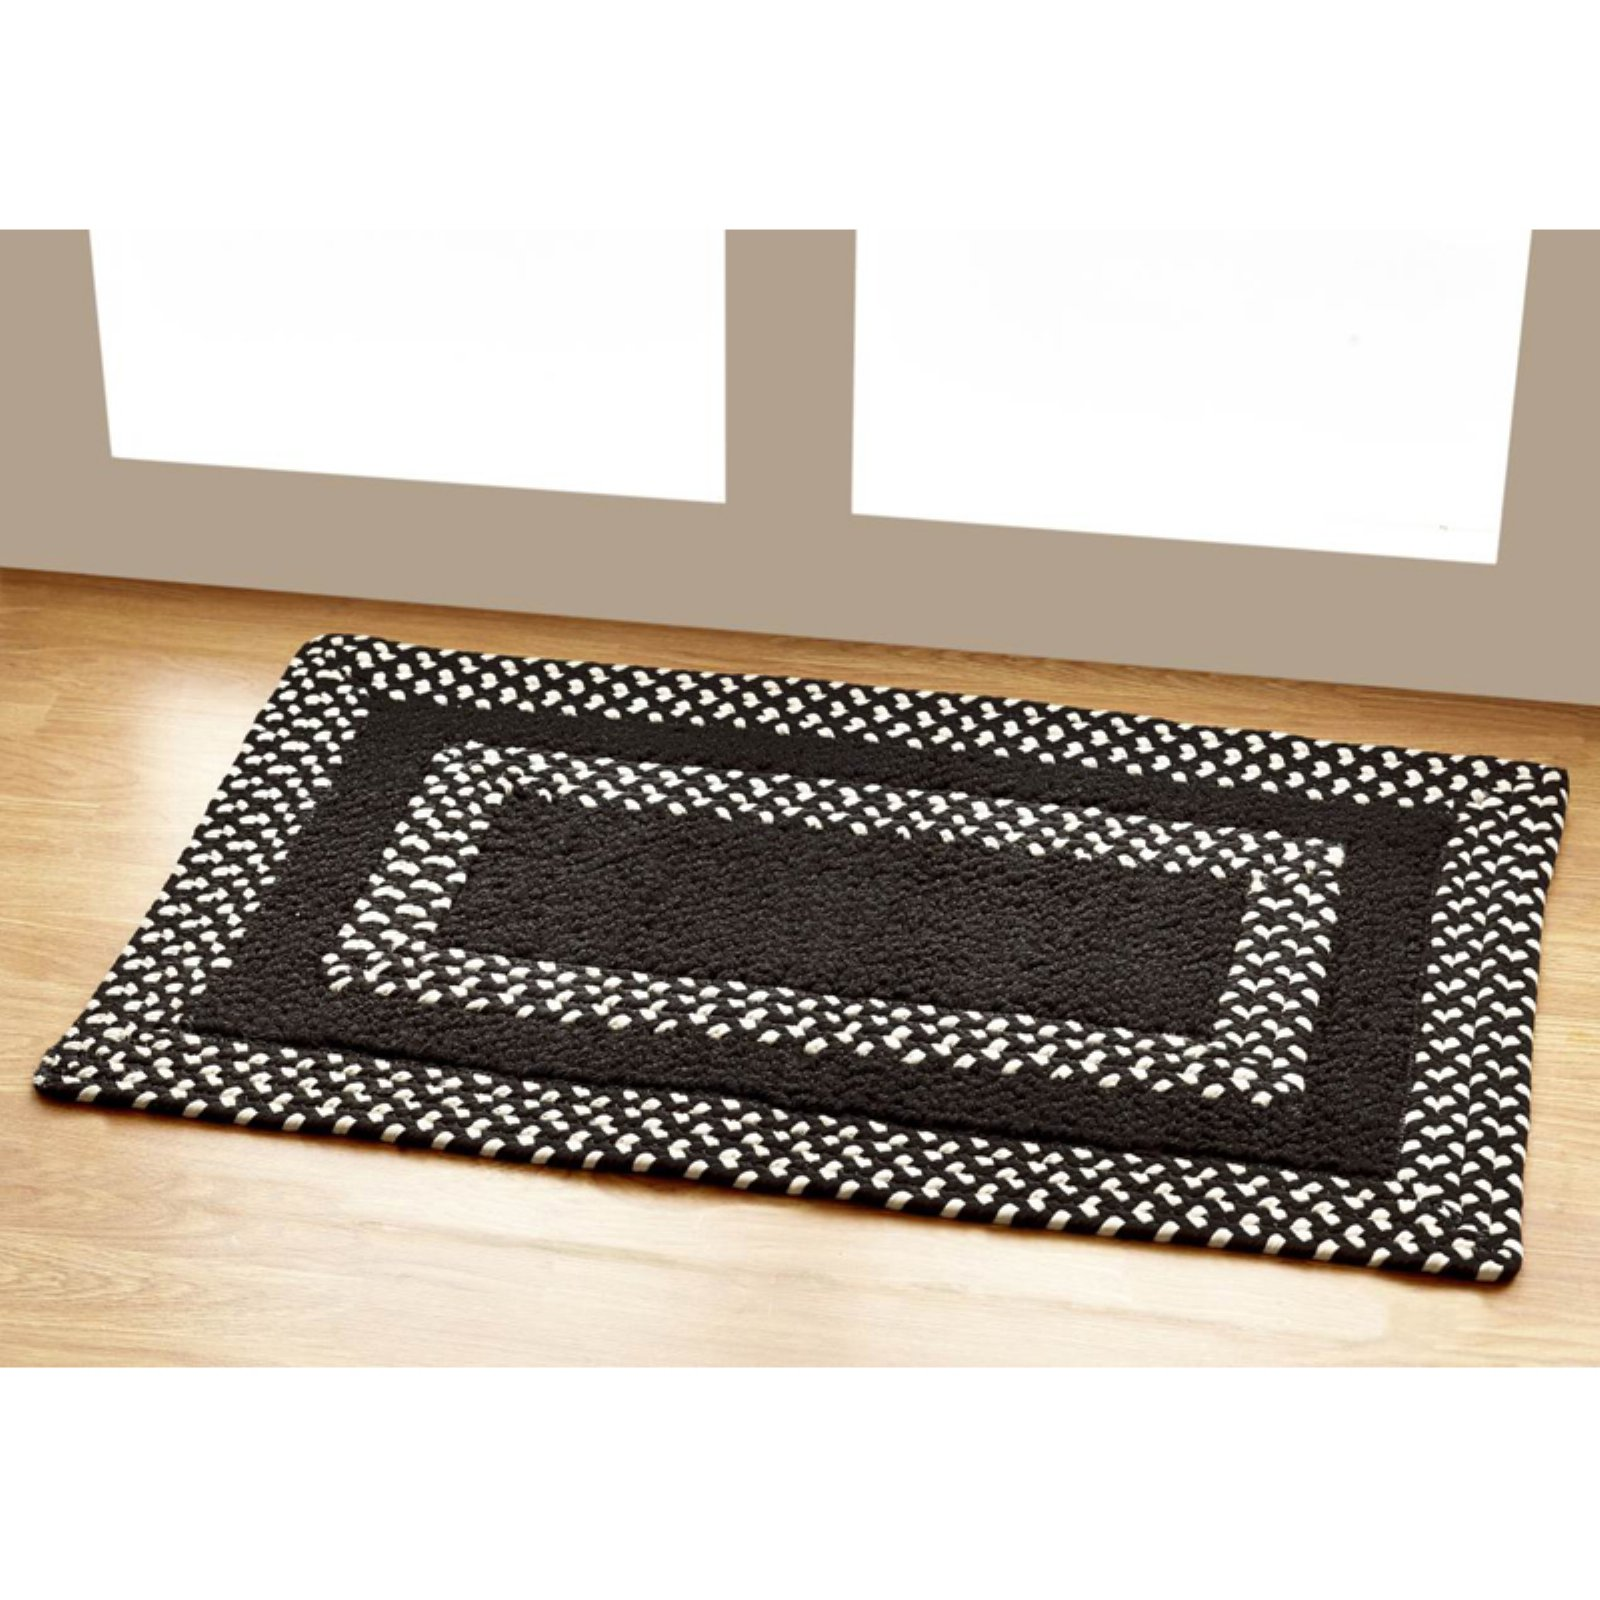 Hercules Handwoven Rugs 21X34 Chocolate